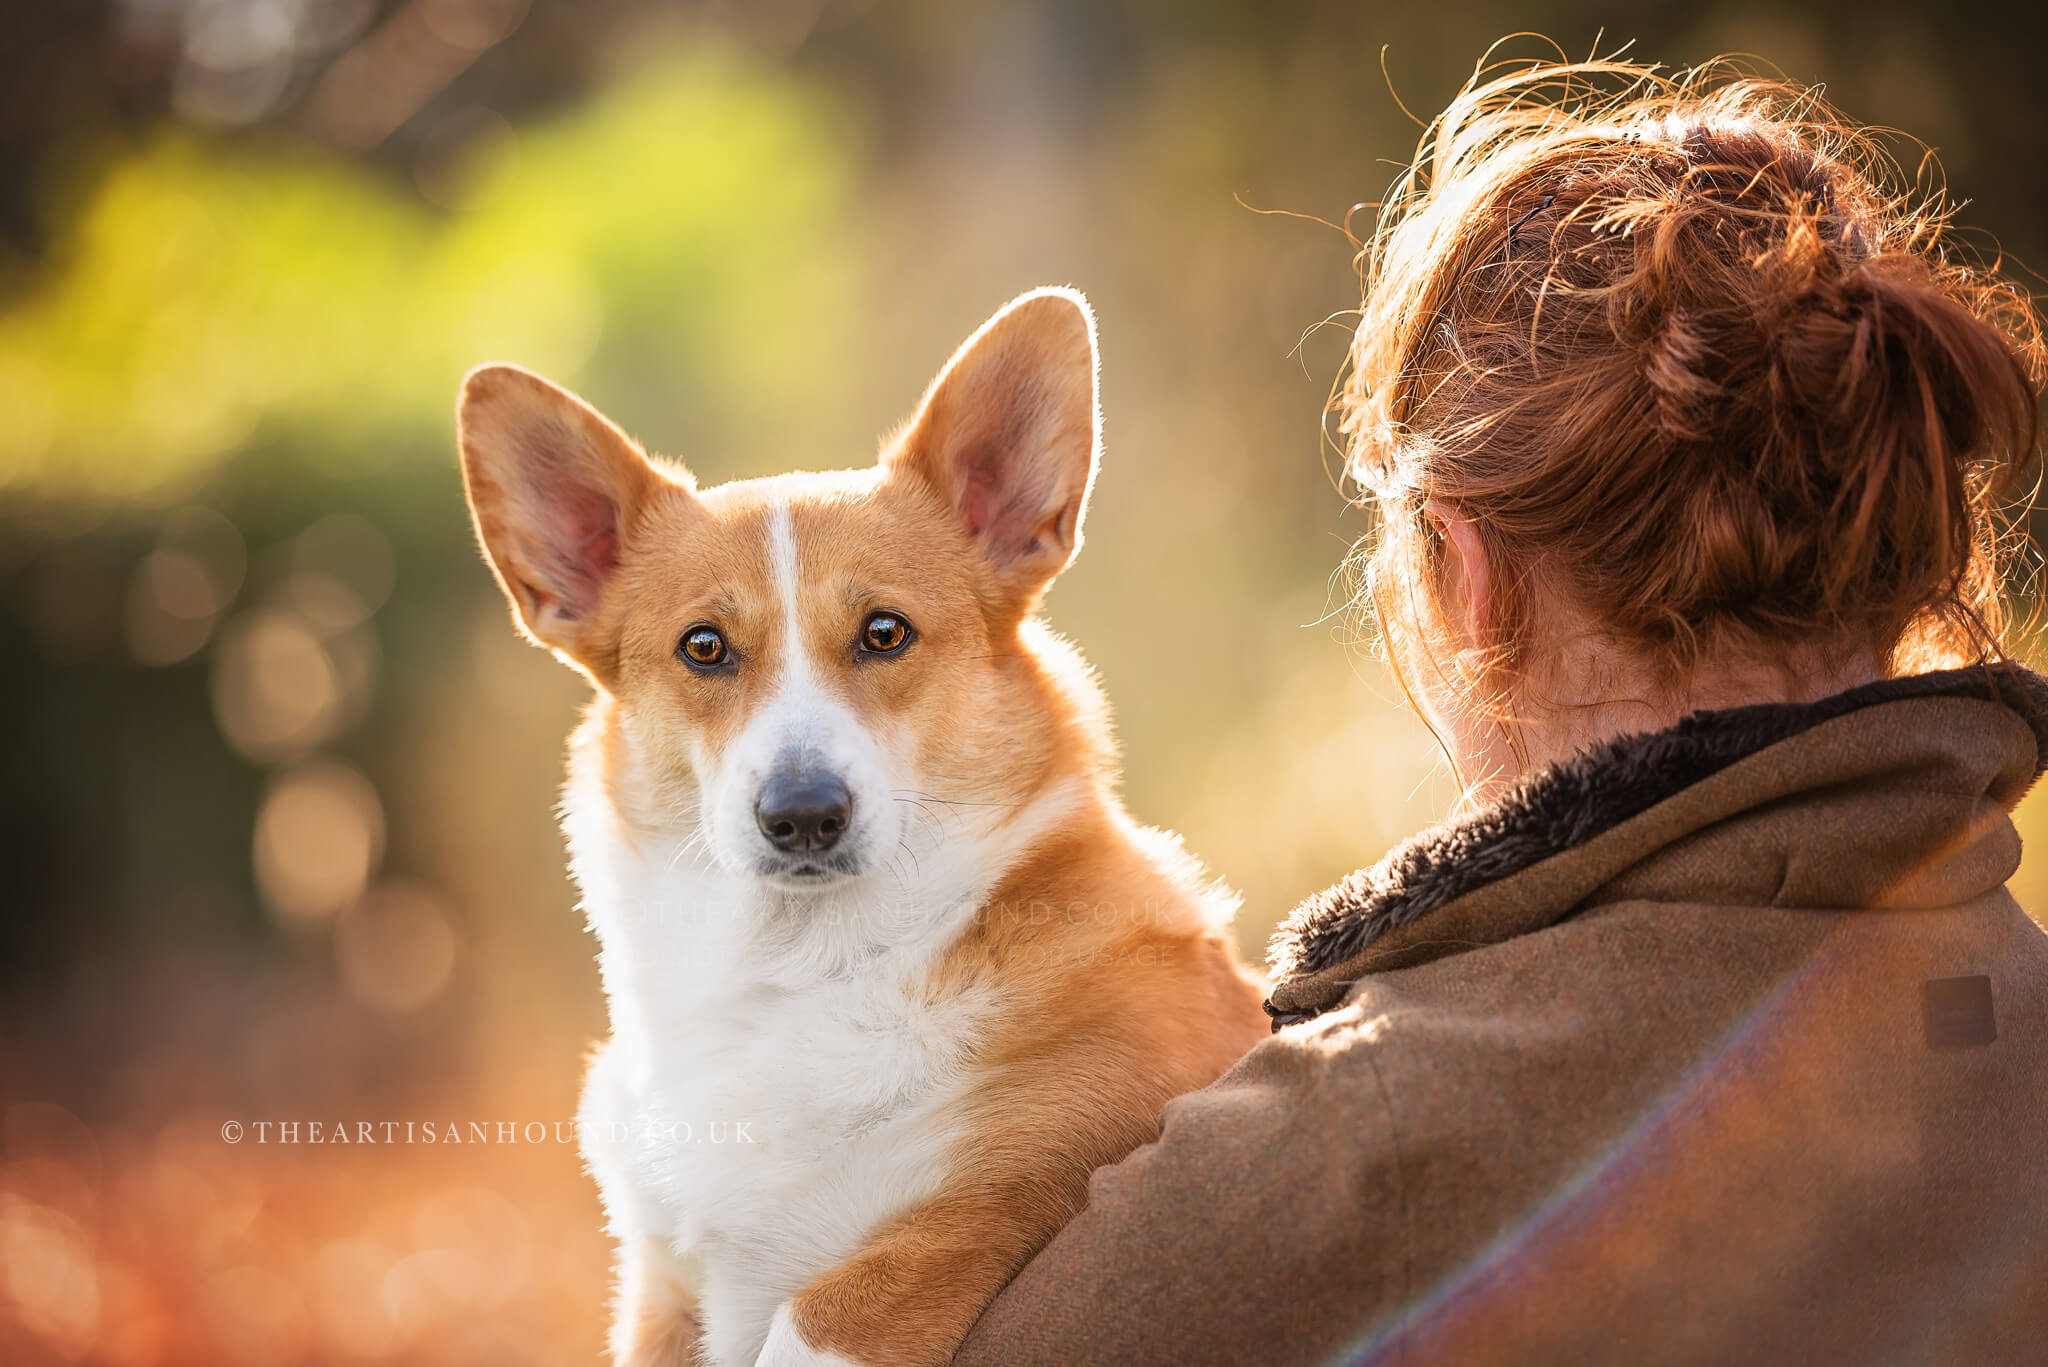 Corgi in arms of female owner